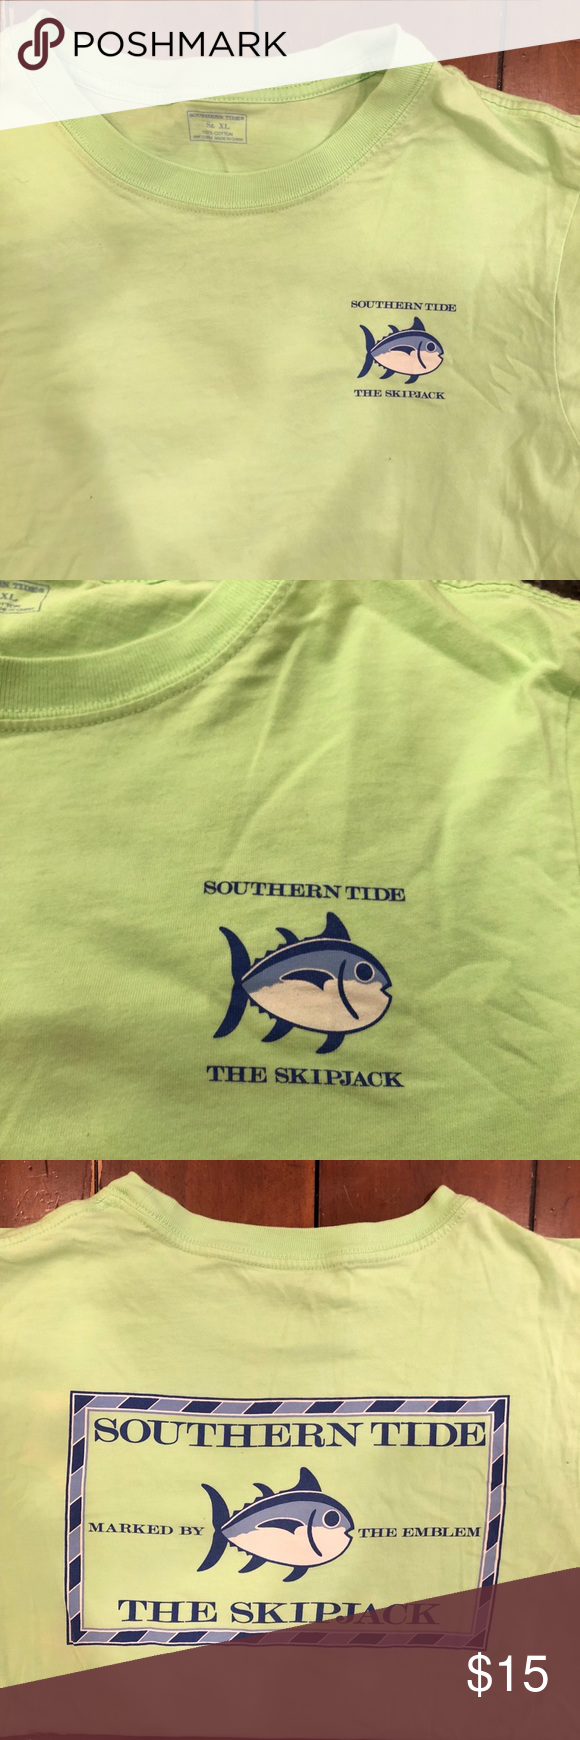 Southern Tide T Shirt Lime Green And Super Soft 100 Cotton Not That Stiff T Shirt Material It Has A Logo The Corn Southern Tide T Shirt Southern Tide Tshirt